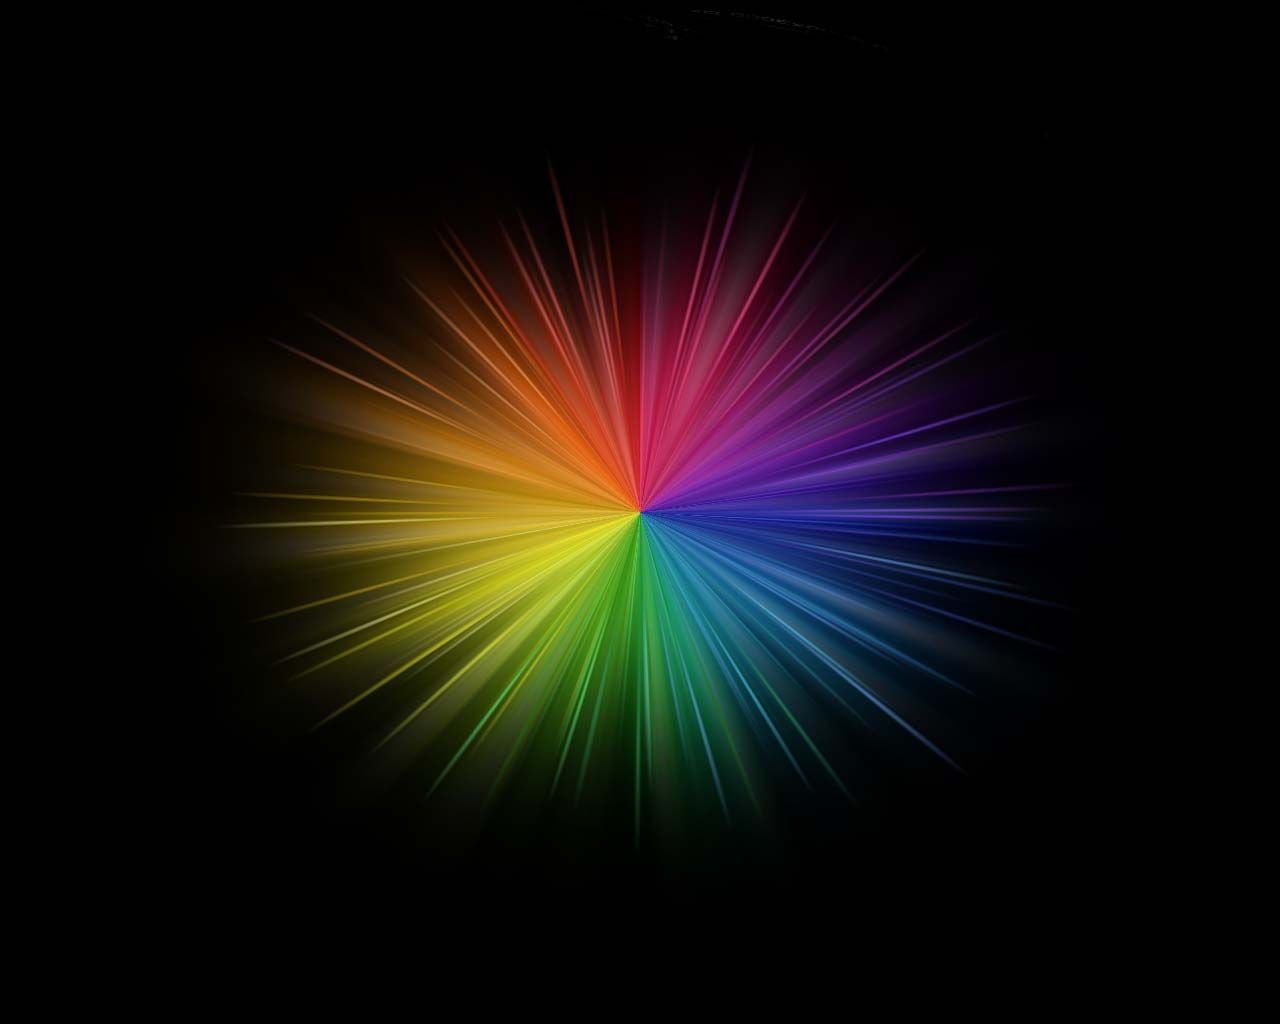 abstract rainbow background wallpaper black - photo #49